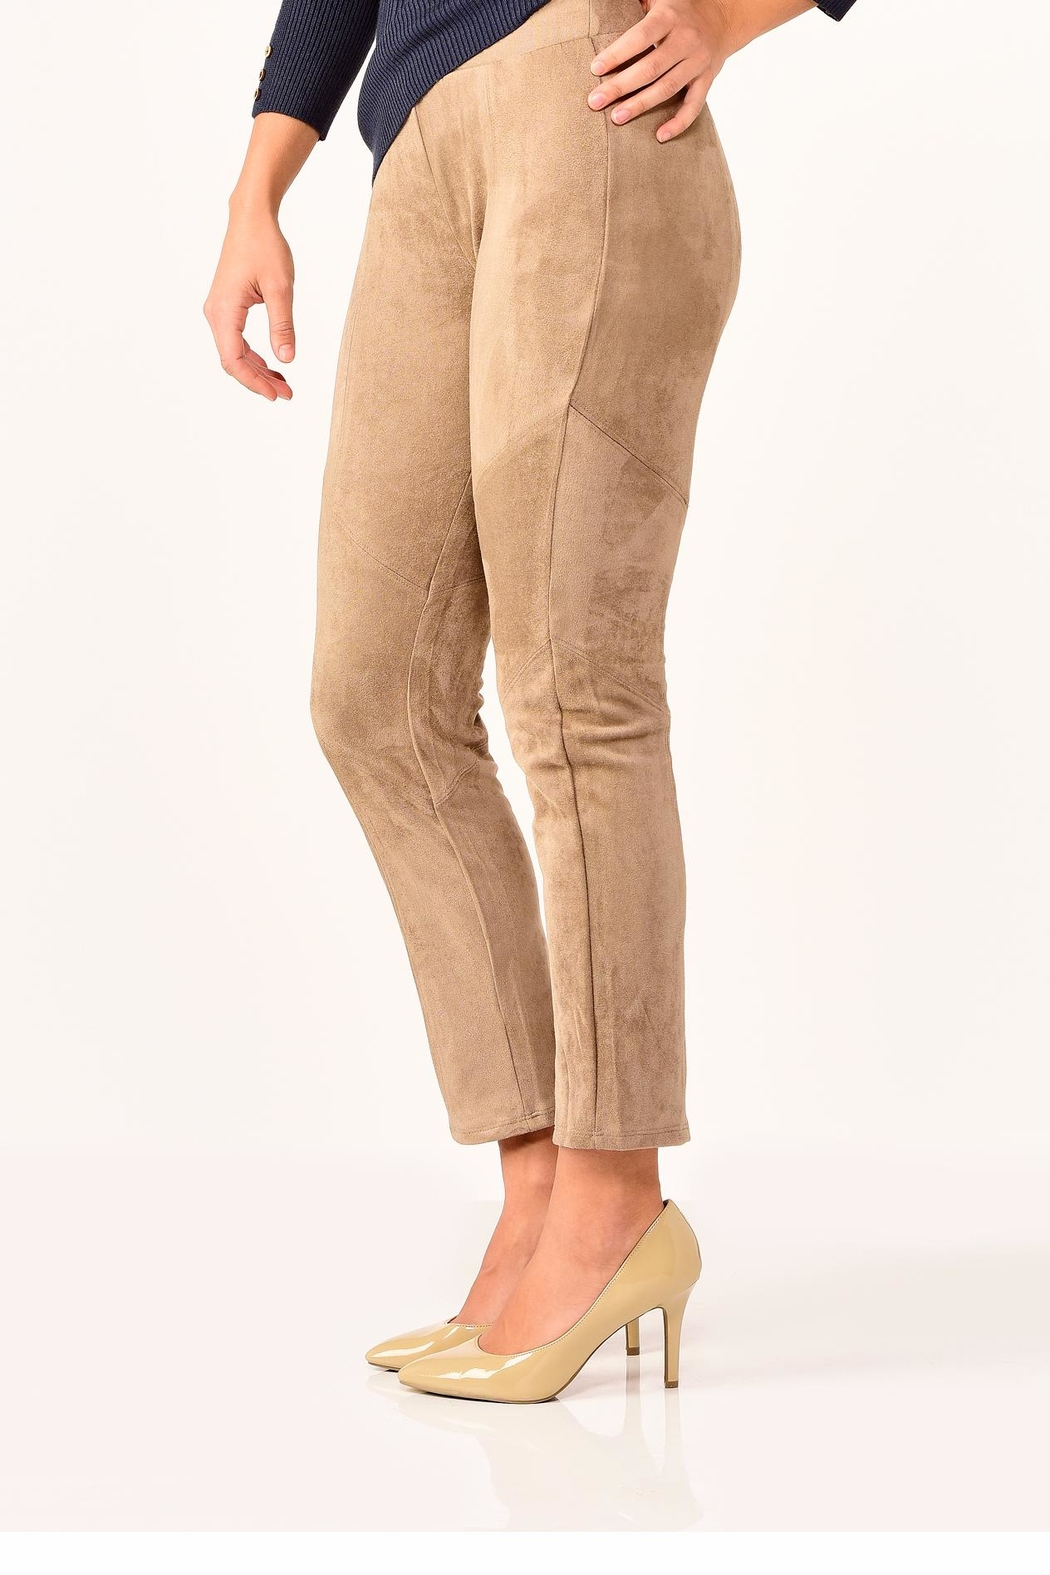 Charlie Paige Faux Suede Leggings - Side Cropped Image